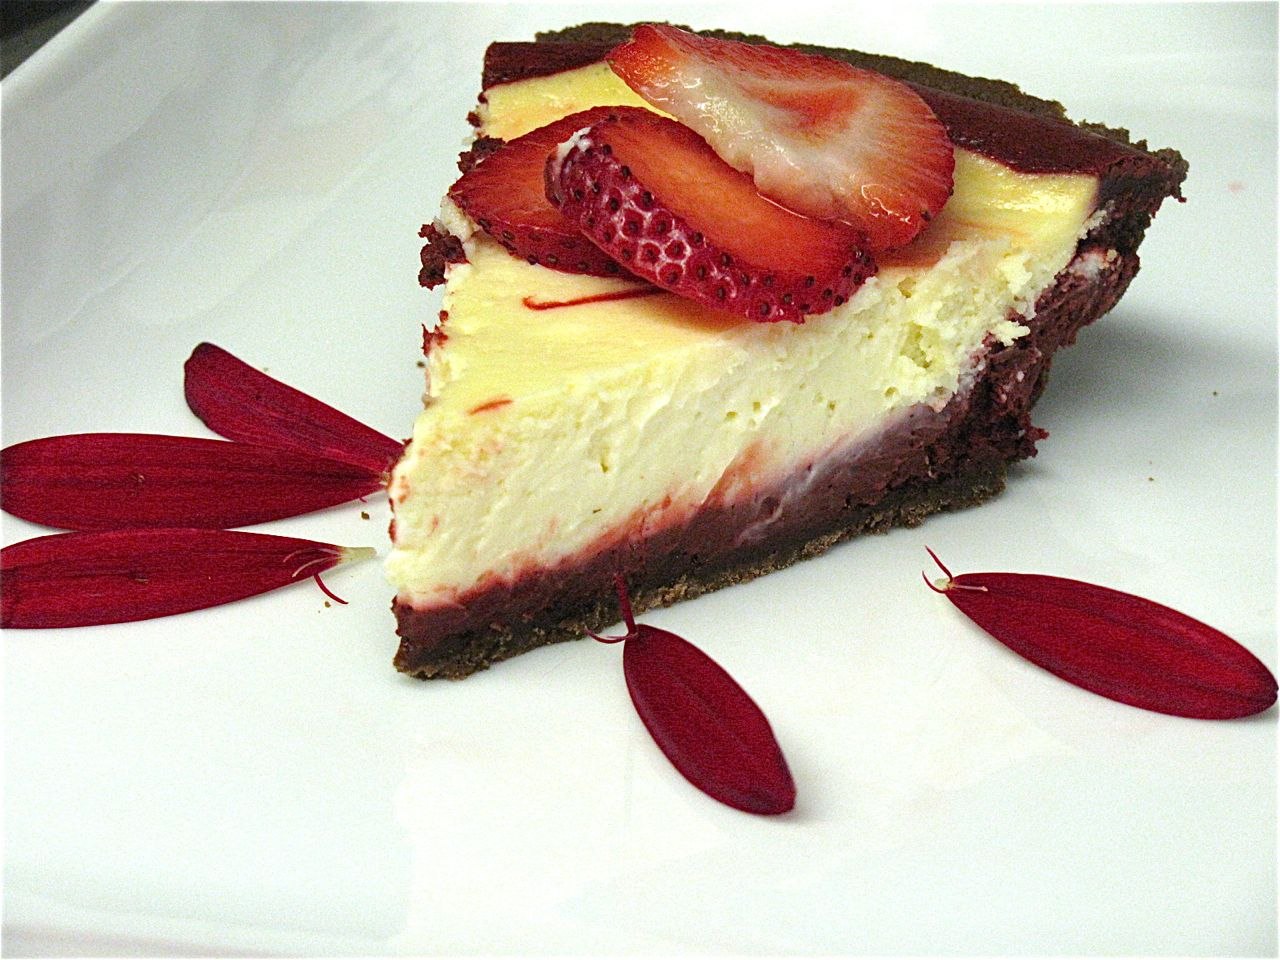 PASSION ON THE STOVE TOP: Red Velvet Cheesecake